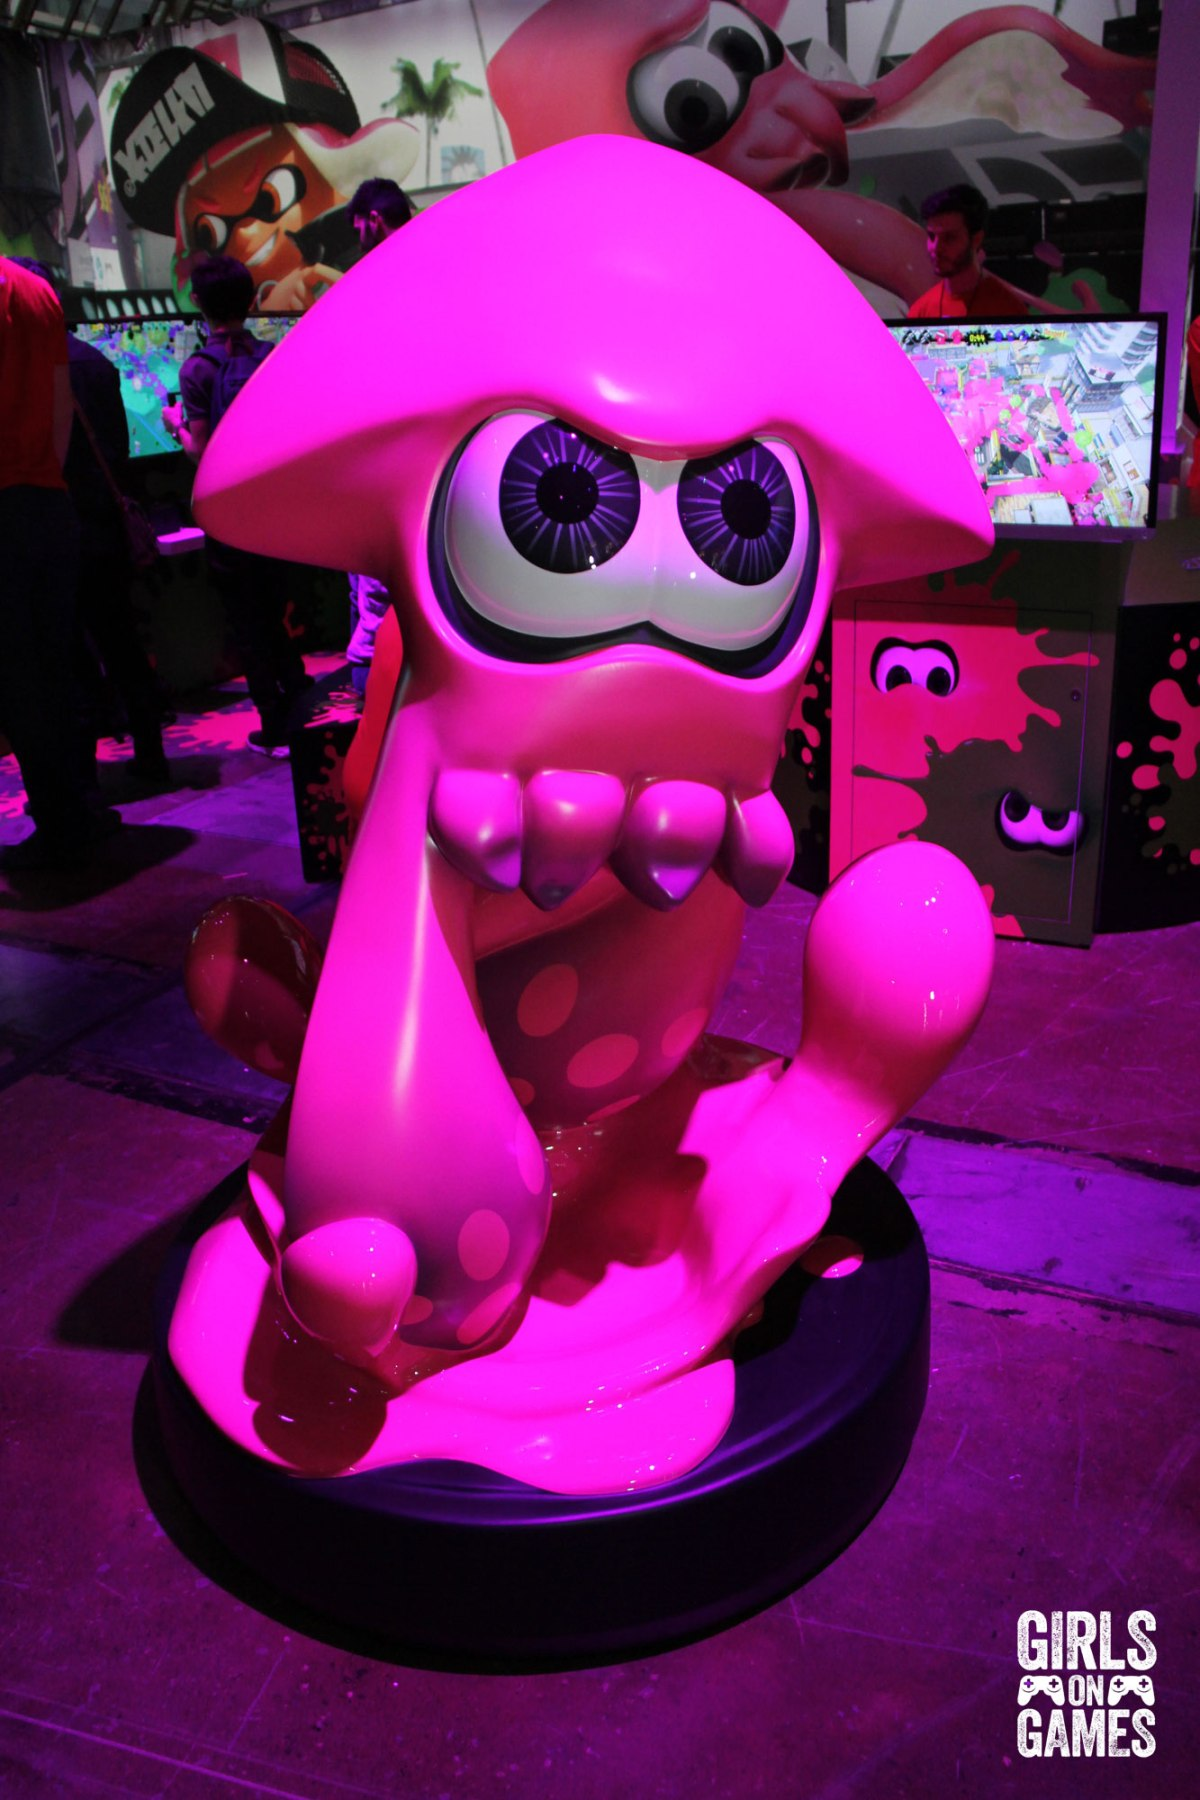 Splatoon Ink statue at the Nintendo Switch event in Toronto. Photo: Leah Jewer / Girls on Games